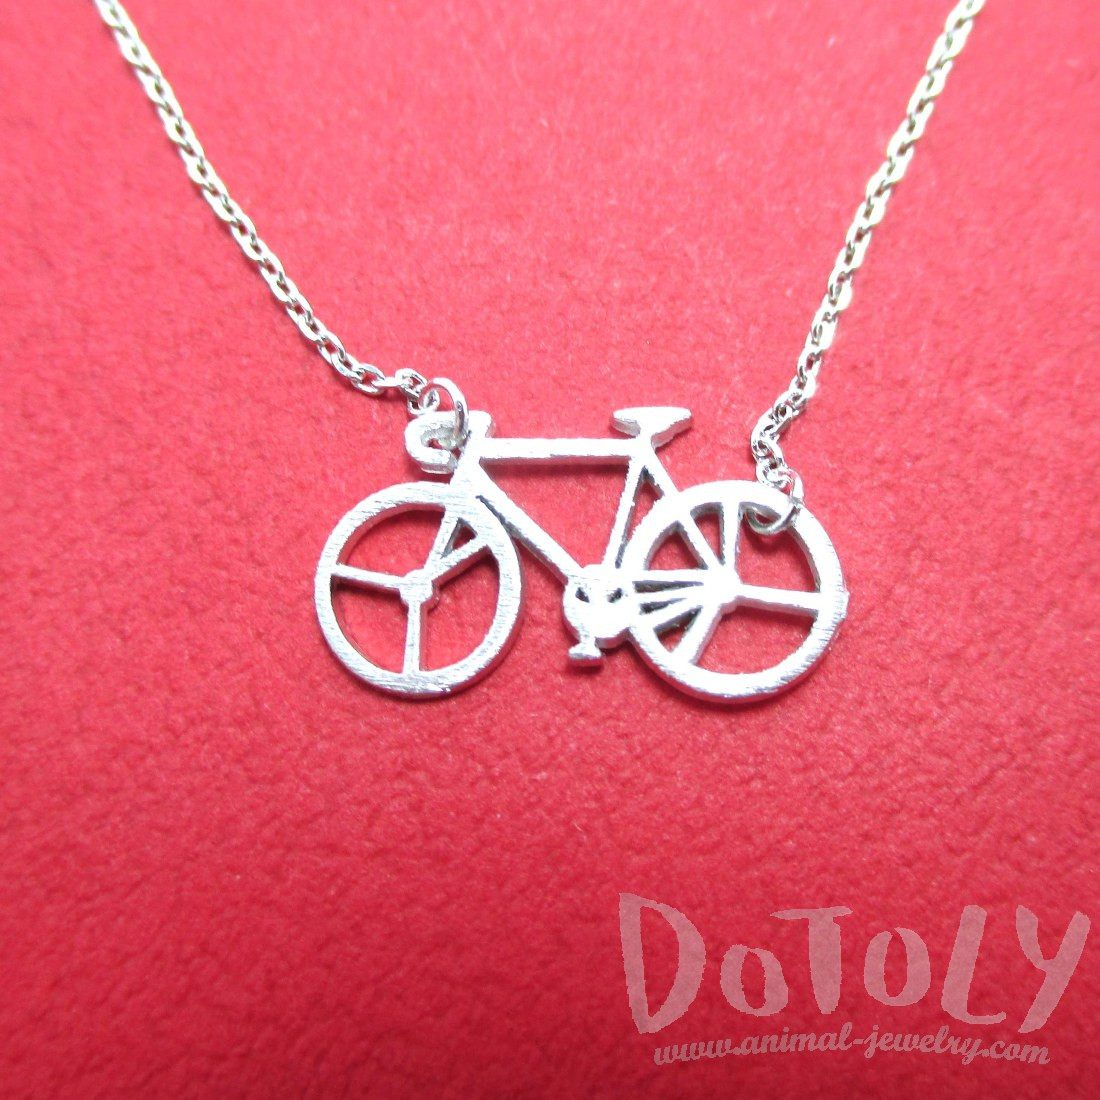 Bicycle Bike Silhouette Shaped Charm Necklace in Silver